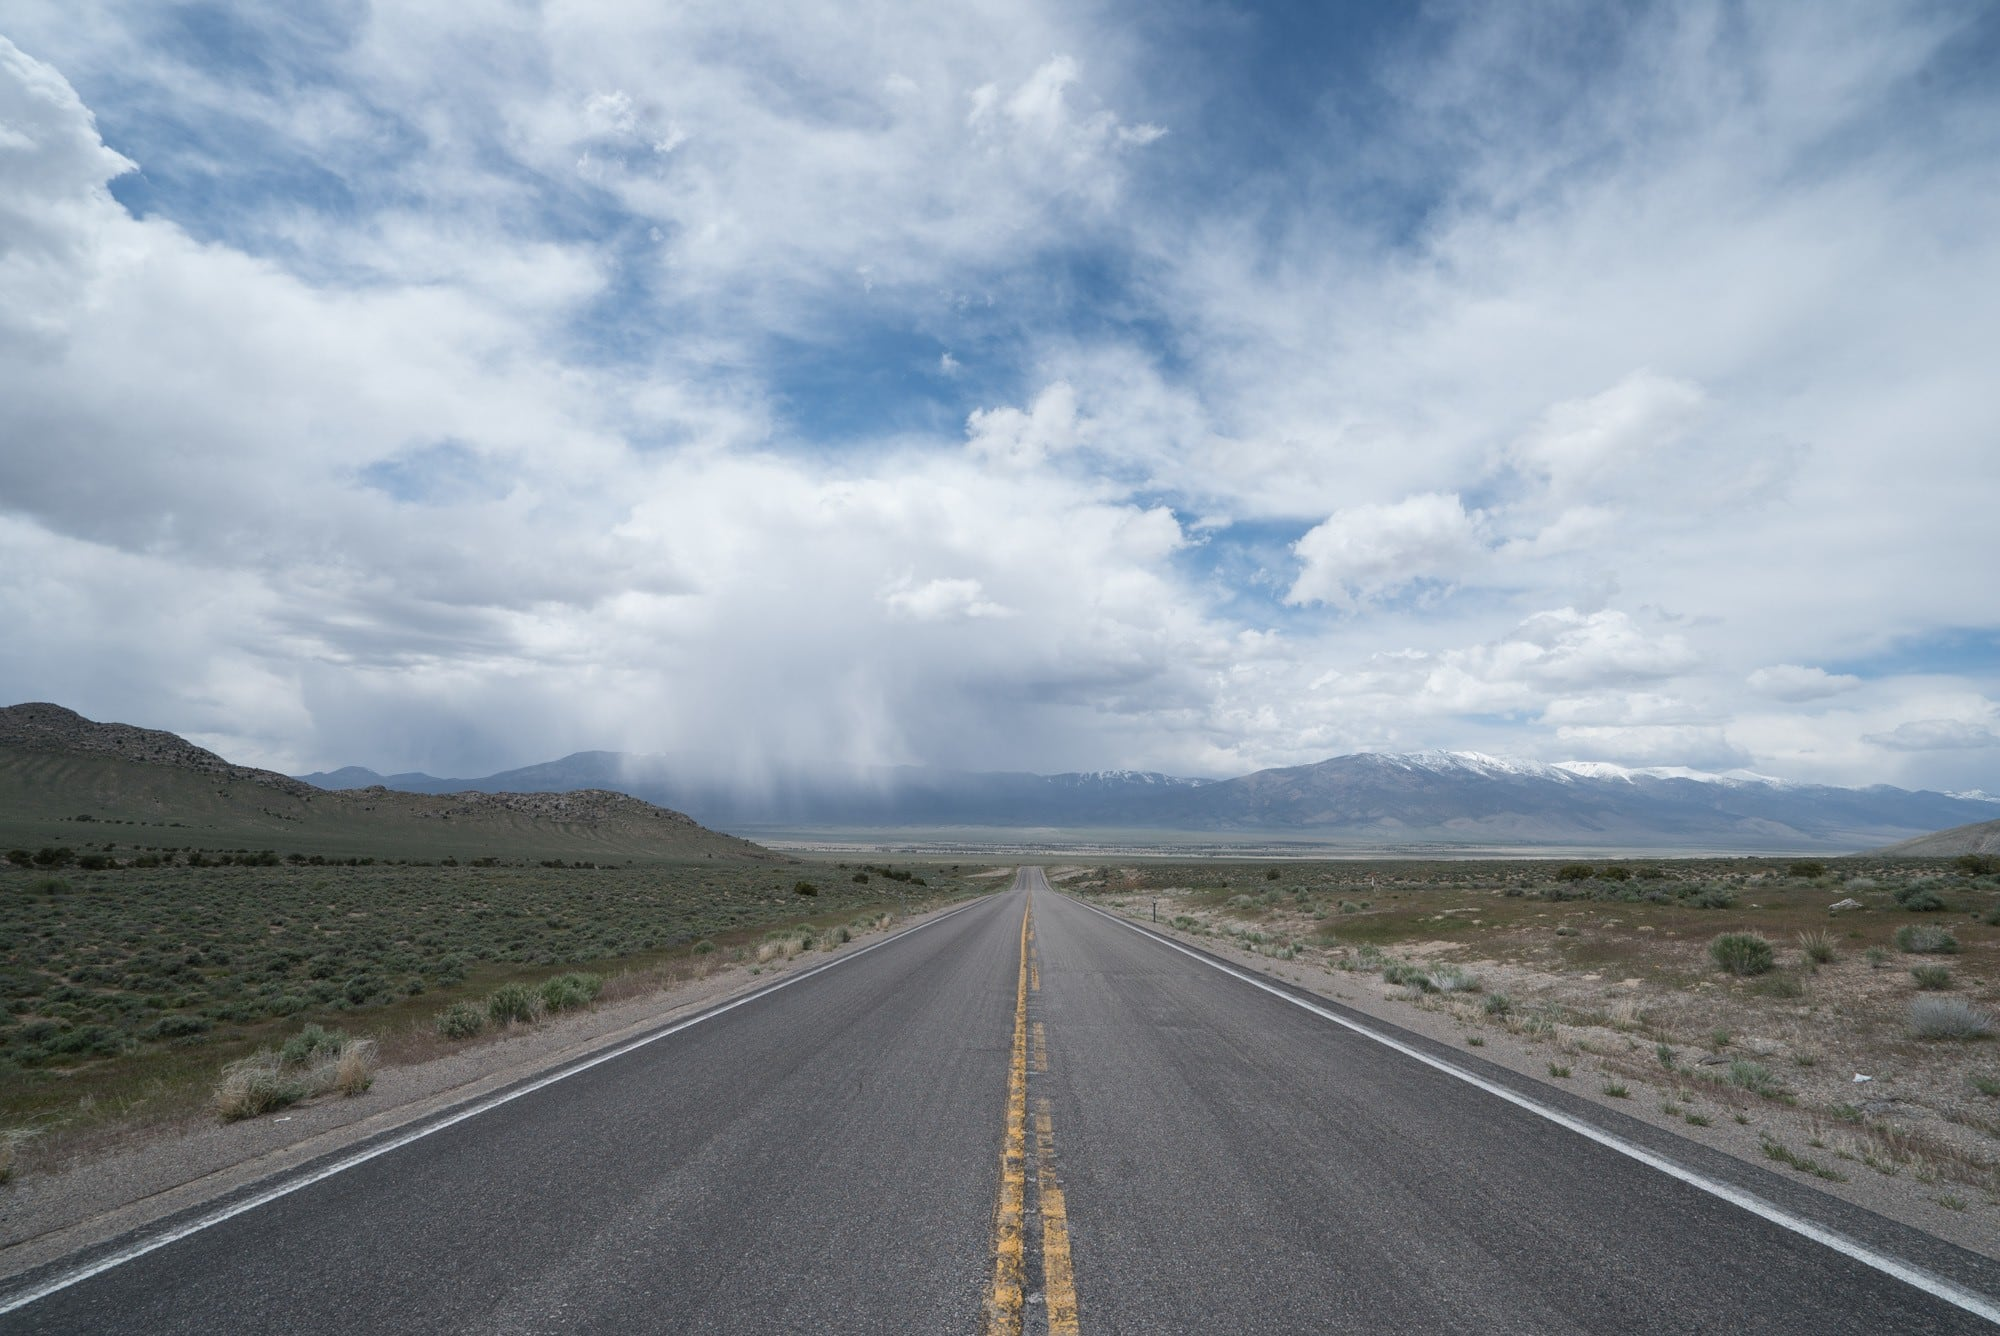 The Loneliest Highway // Visit 12 of the best Nevada road trip stops, from the top state parks to hot springs, ghost towns & trails where you'll find solitude and amazing landscapes